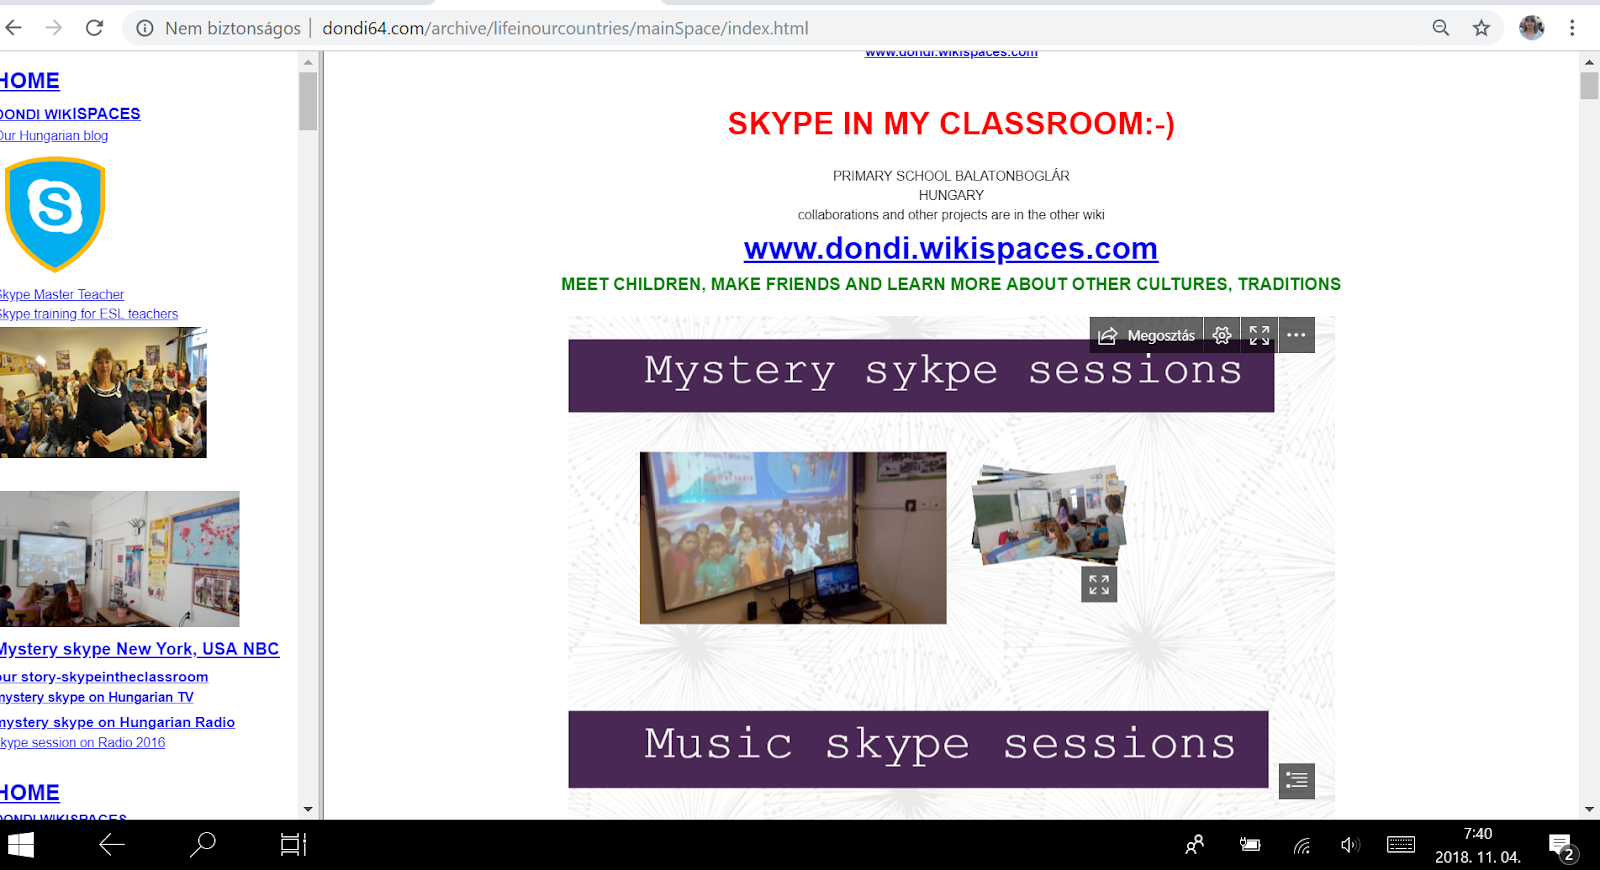 skype sessions 2009-2018